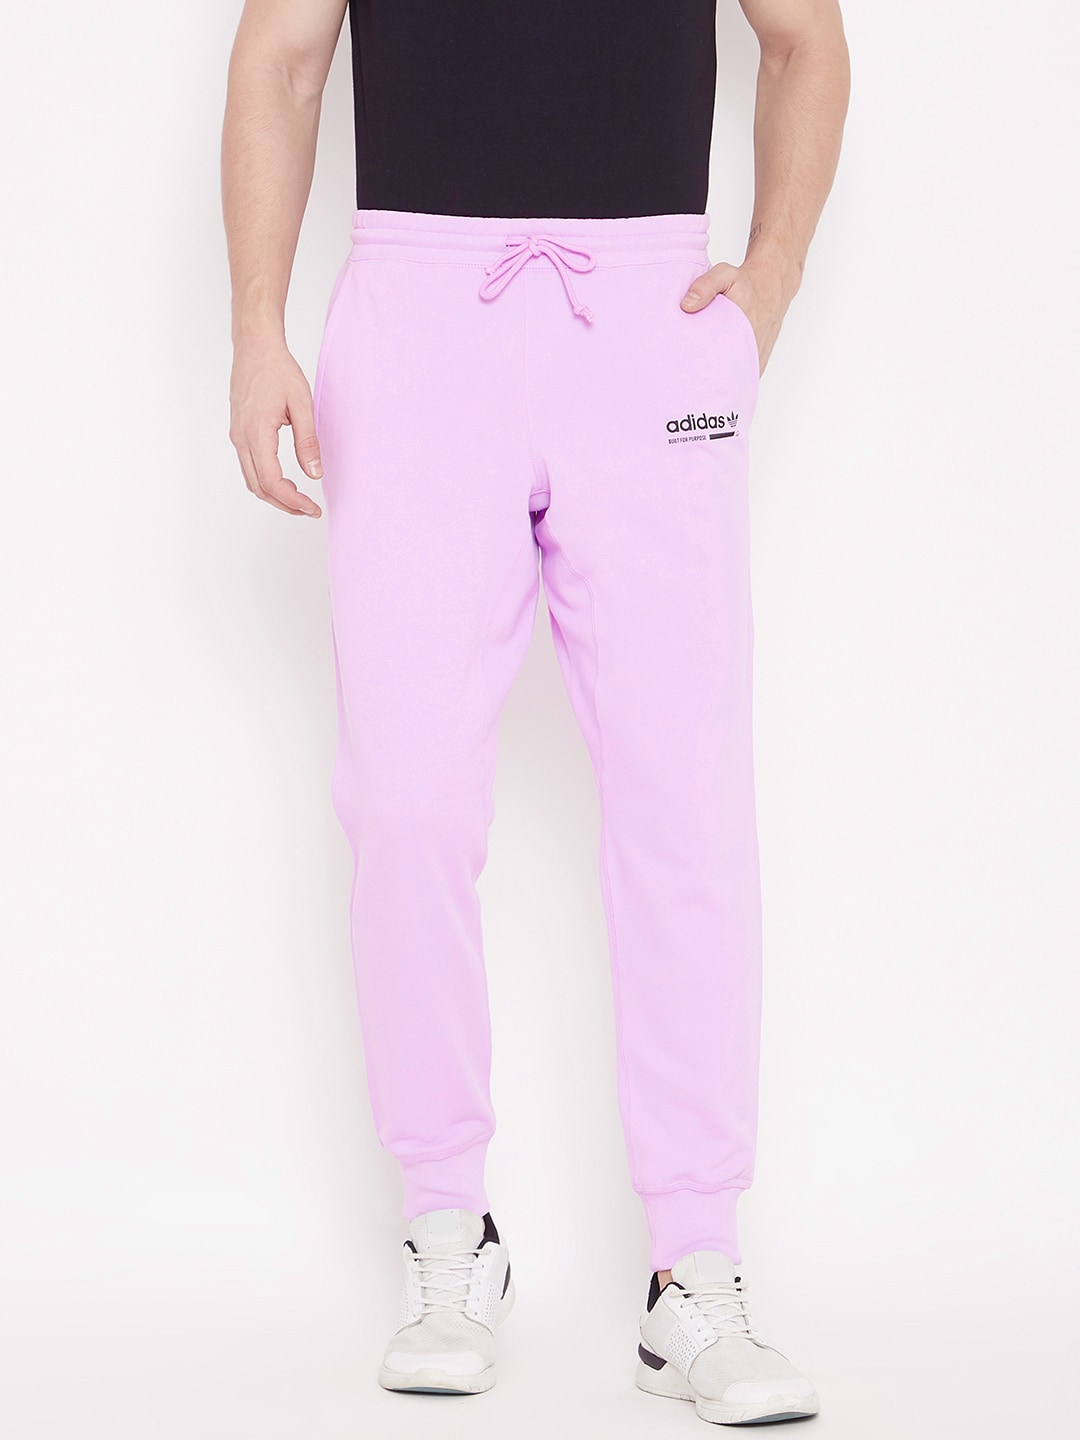 famous brand to buy variety of designs and colors ADIDAS Originals Men Lavender Solid KAVAL Joggers